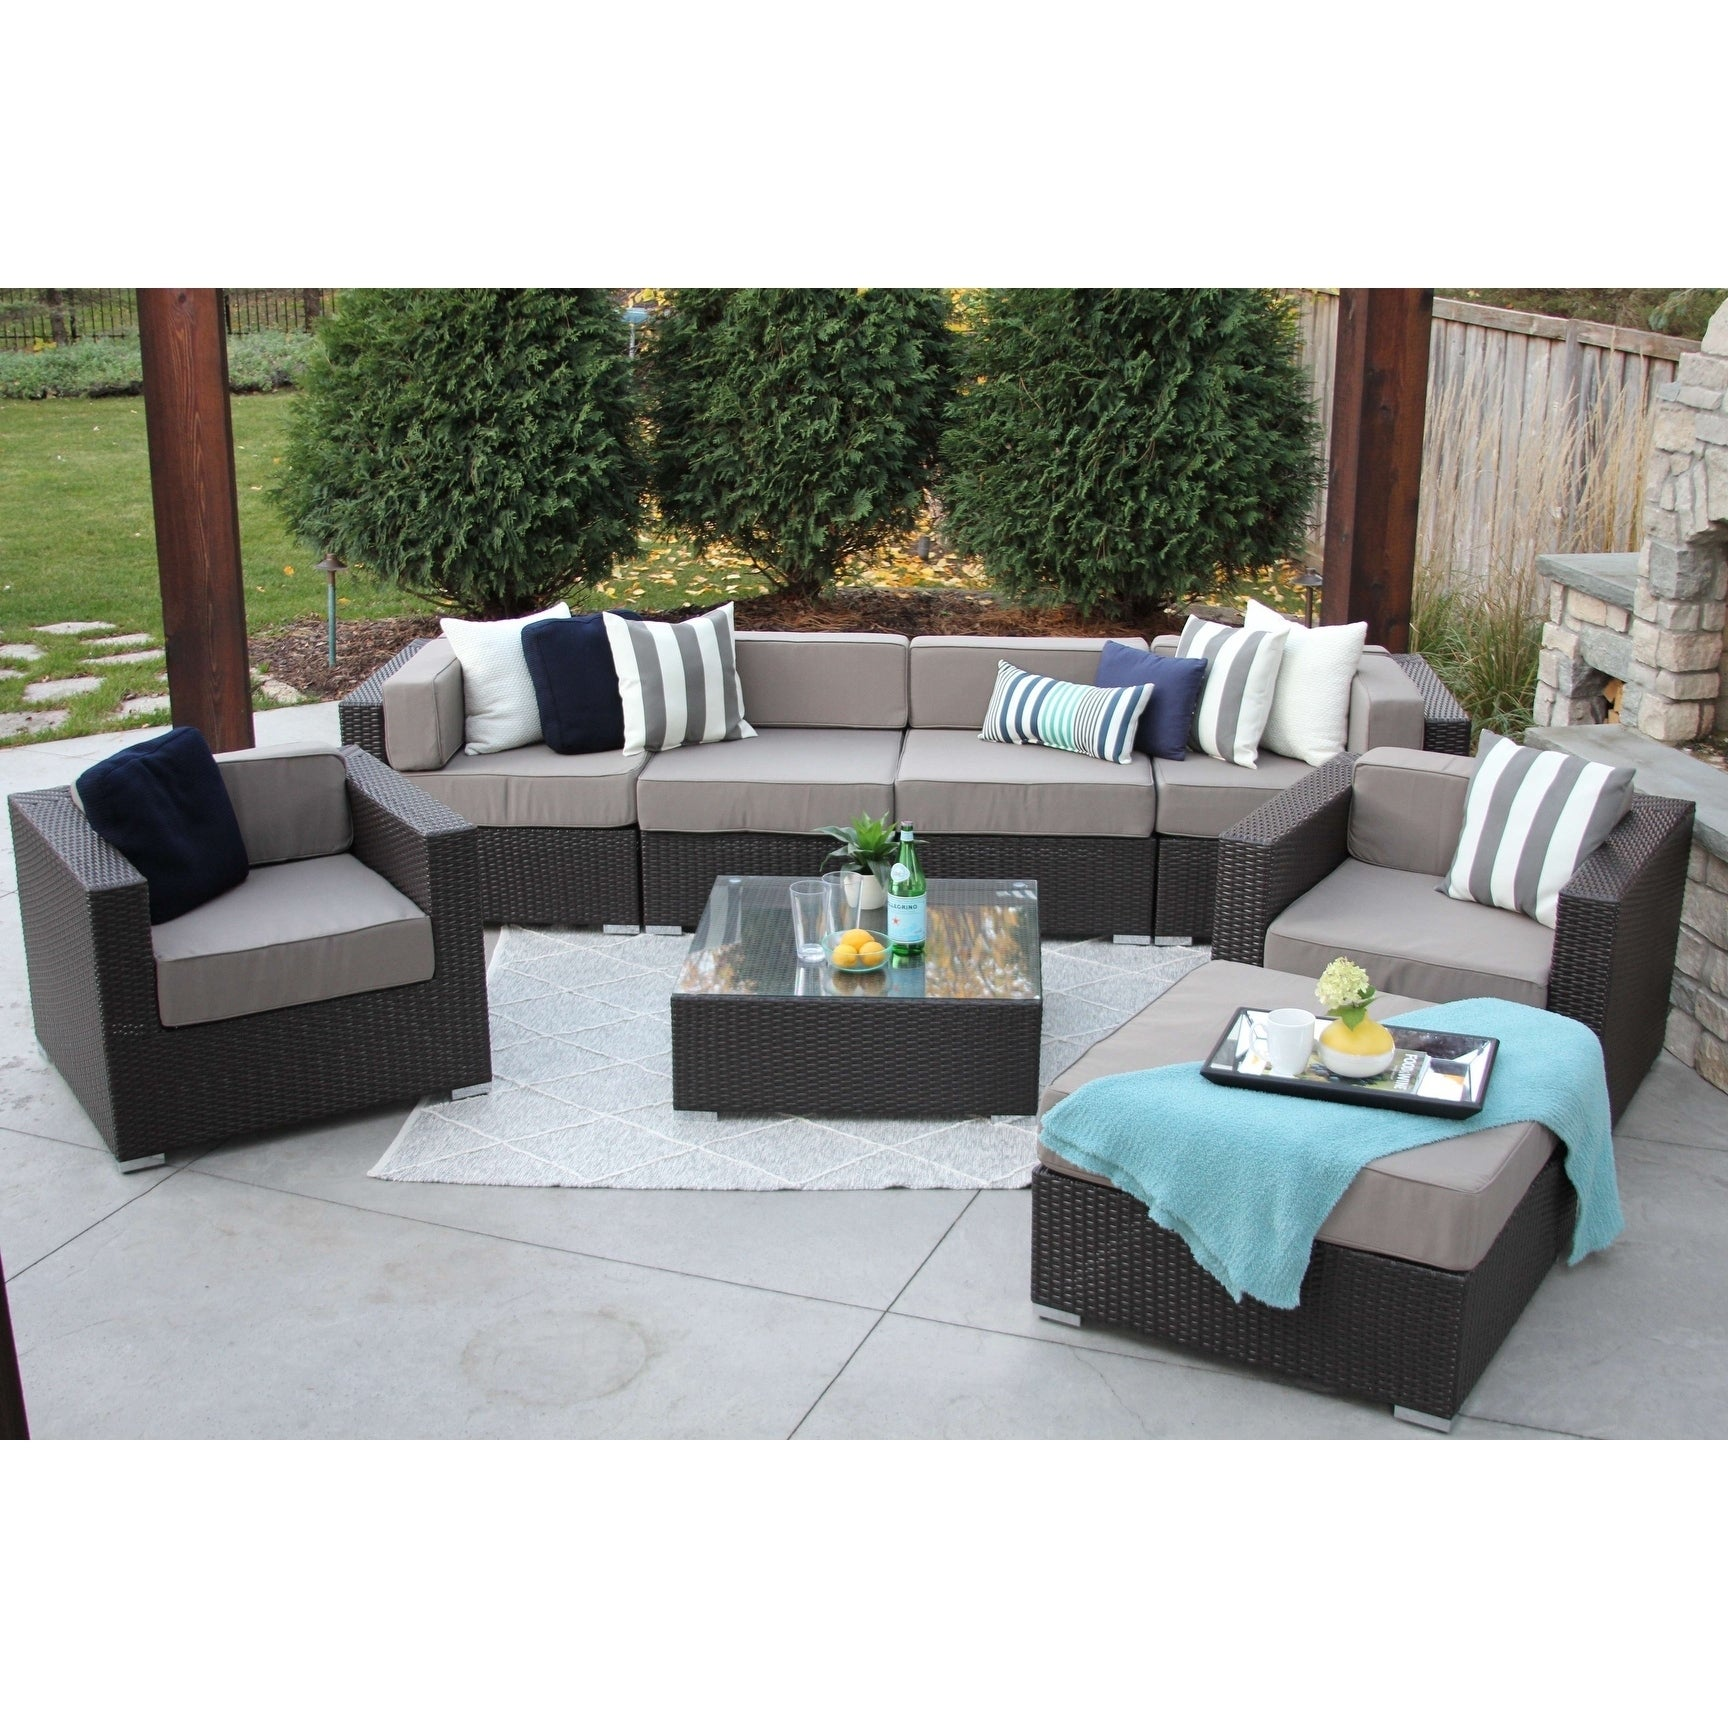 Shop Hiawatha 8-PC Modern Outdoor Rattan Patio Furniture Sofa Set ...